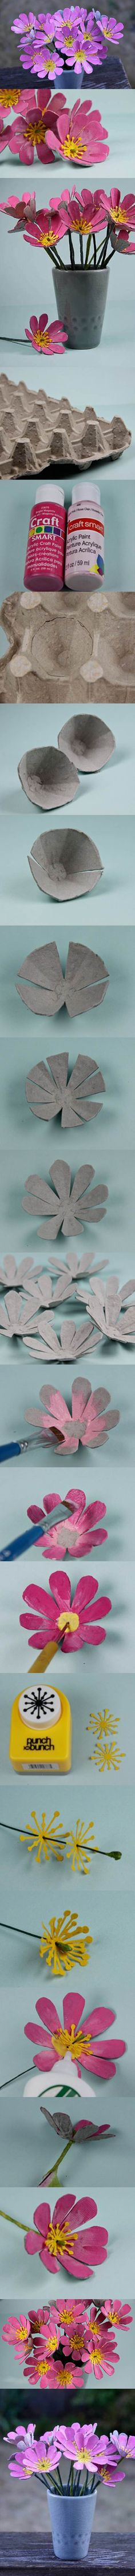 Egg Carton Craft – Butterfly Flowers | iCreativeIdeas.com Follow Us on Facebook --> https://www.facebook.com/iCreativeIdeas